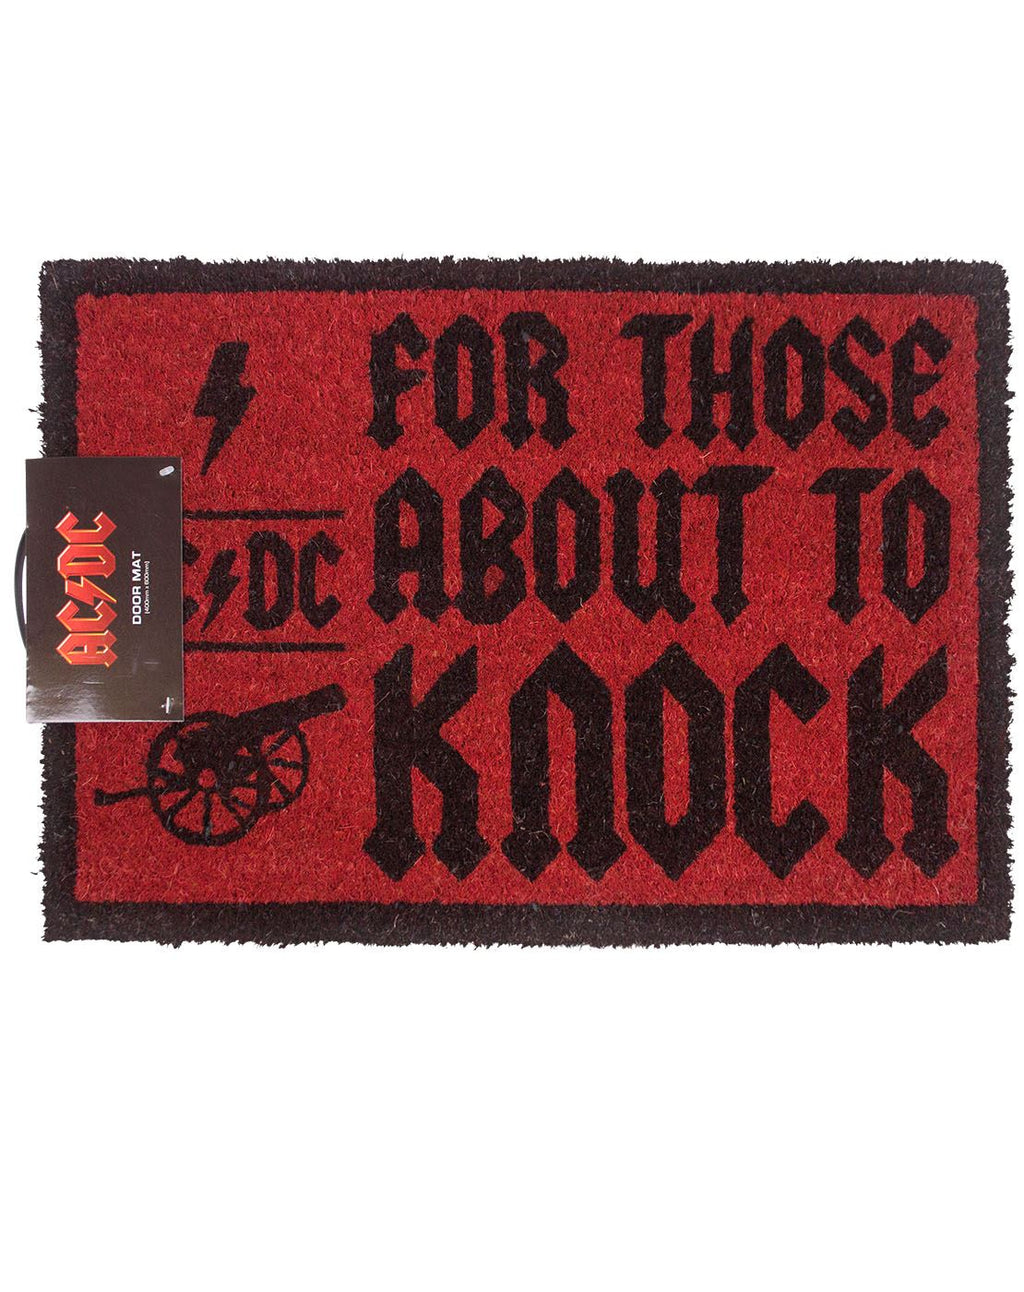 AC/DC For Those About To Knock Door Mat